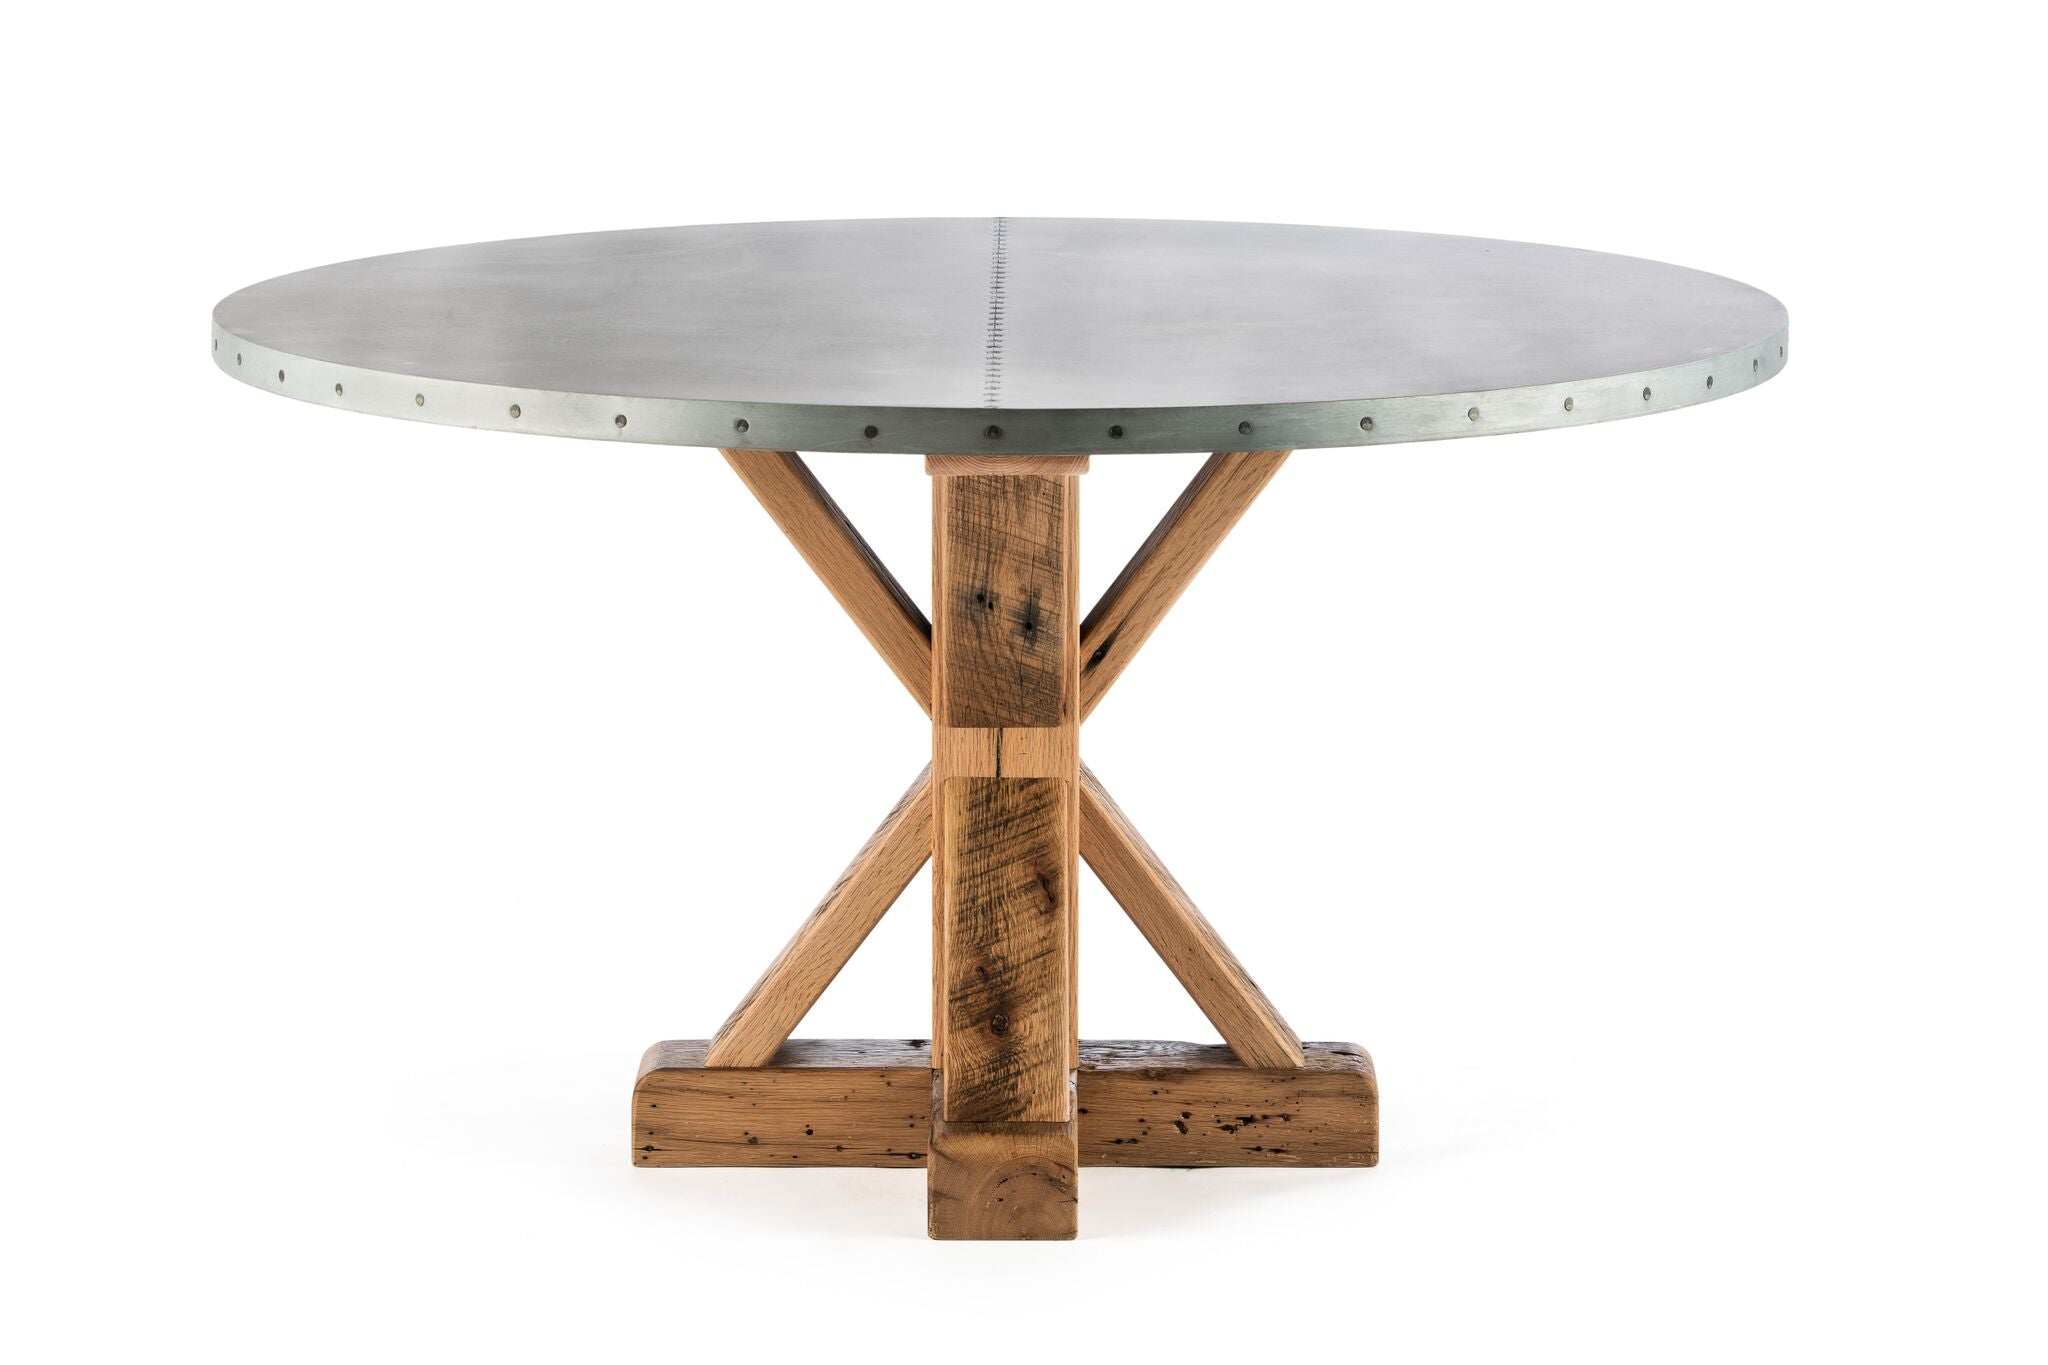 French Trestle Table kingston-krafts-zinc-tables.